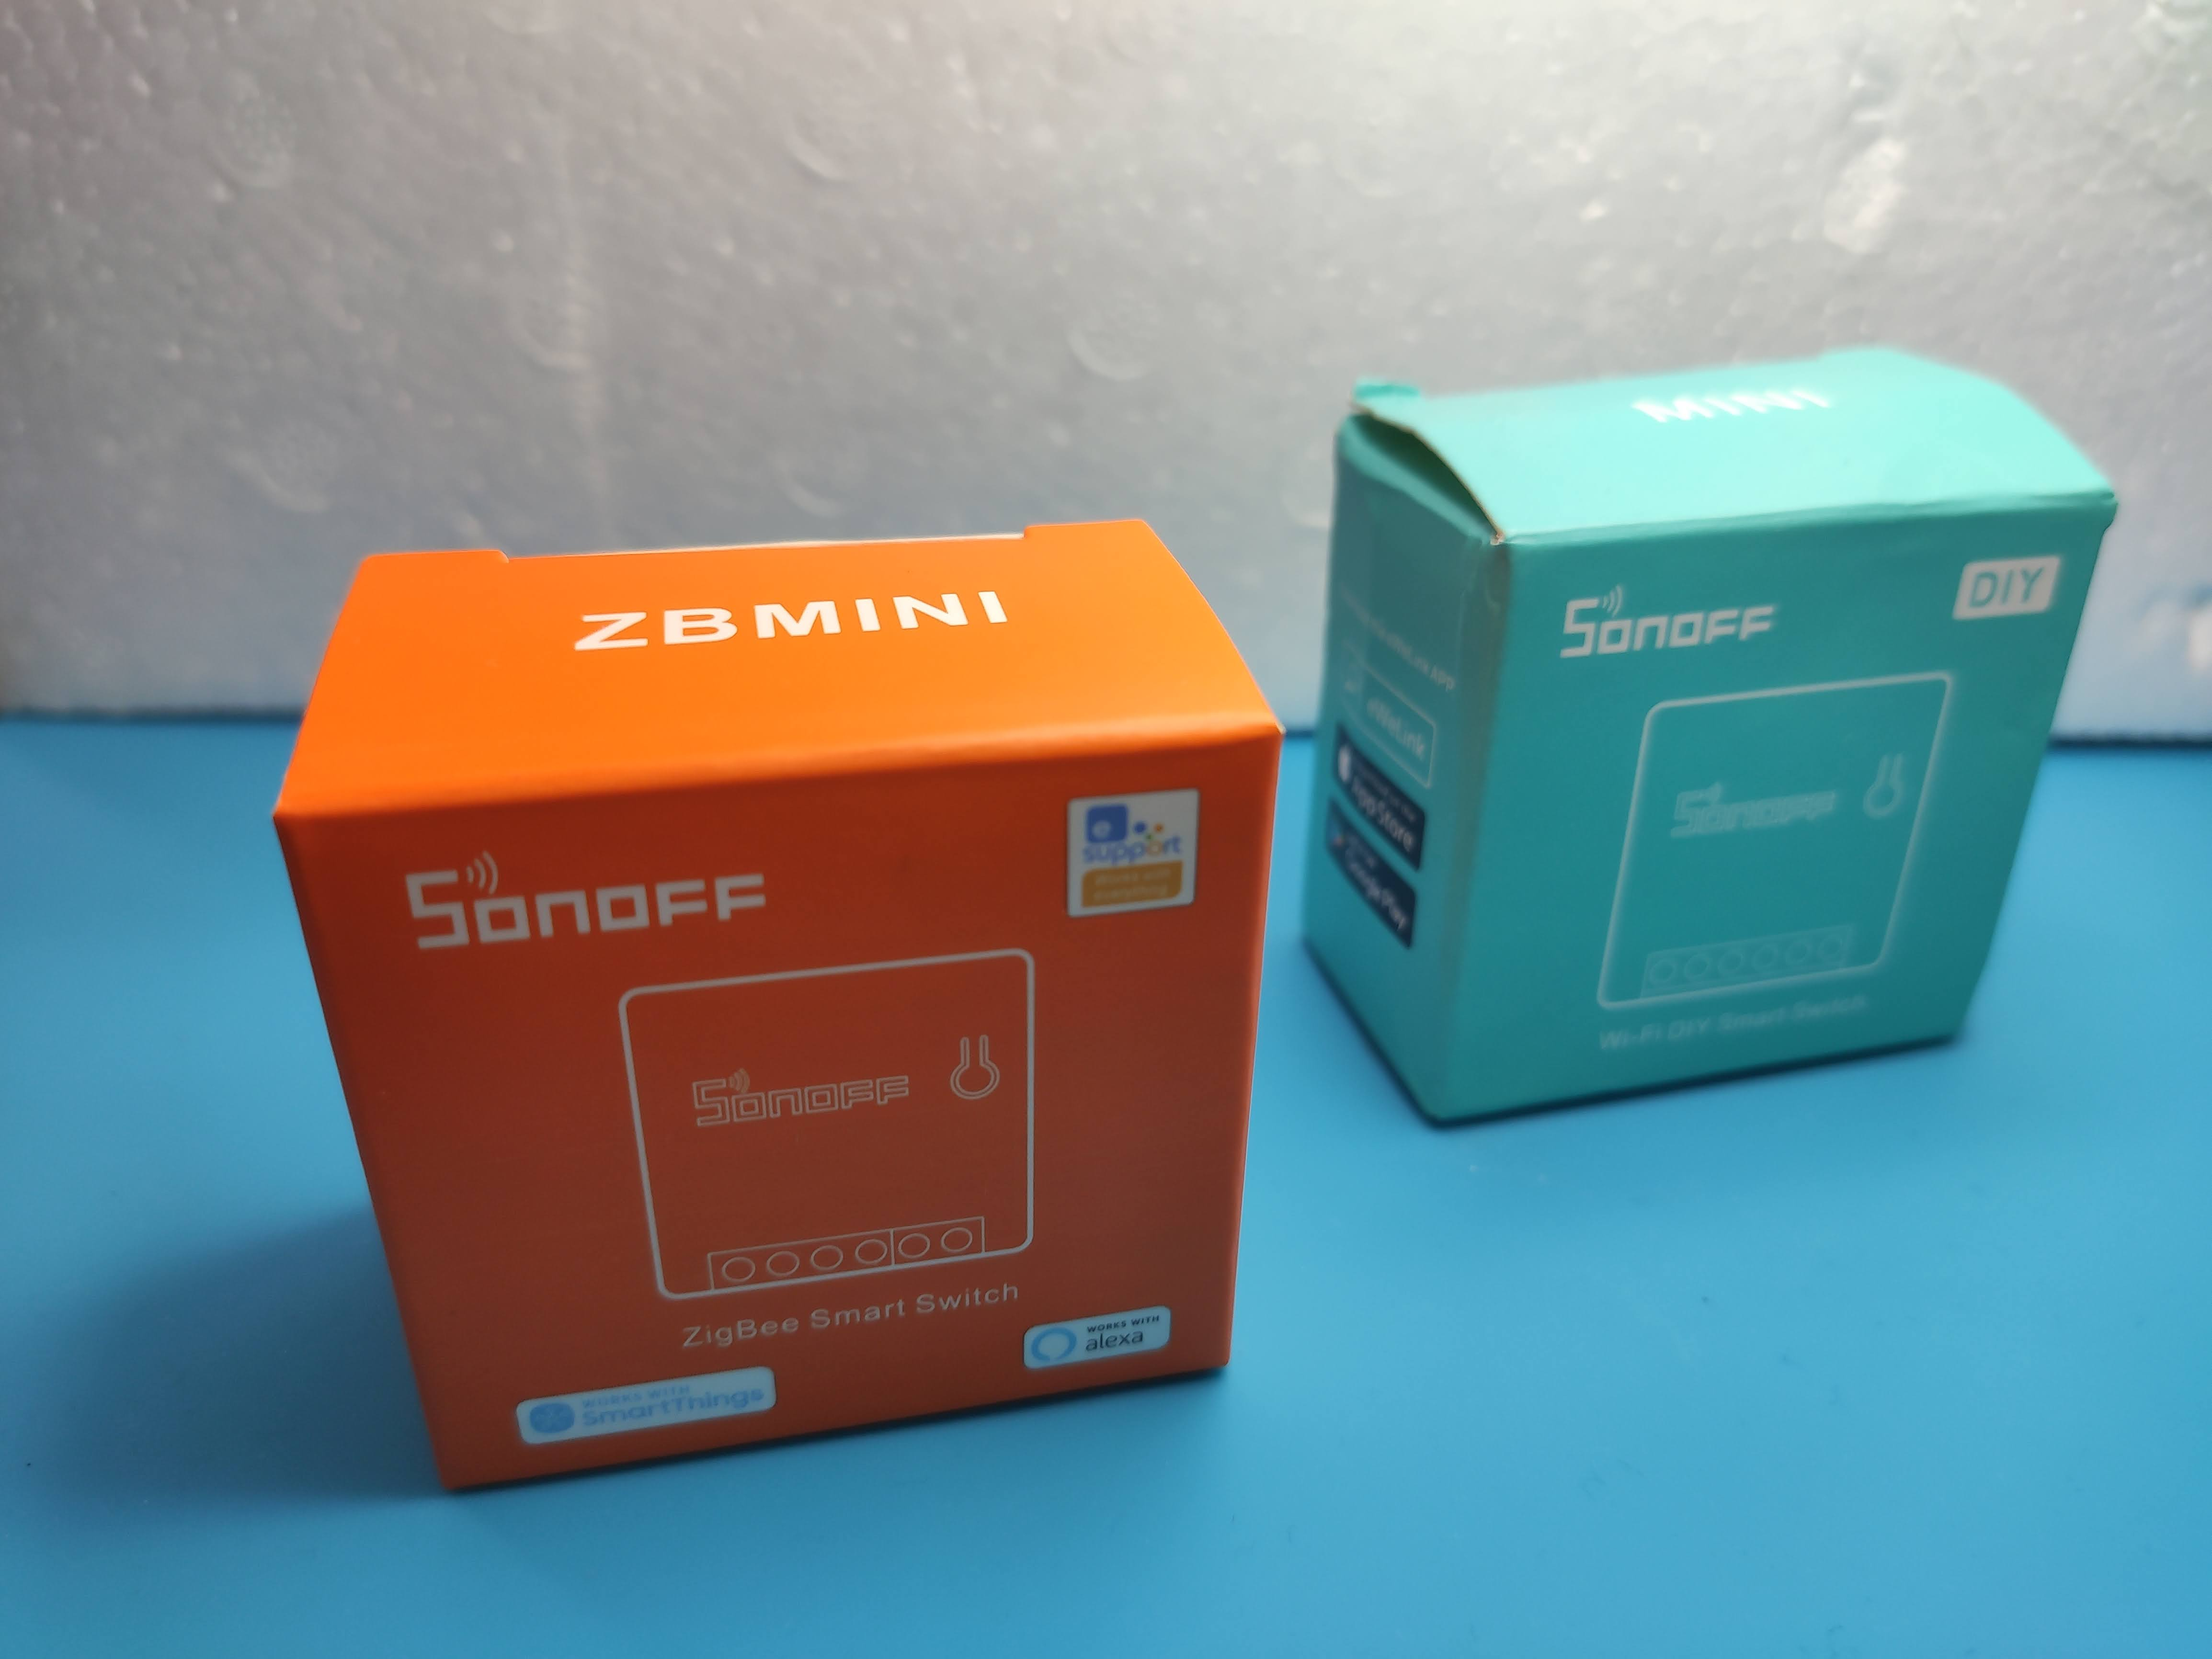 Sonoff Zbmini Review